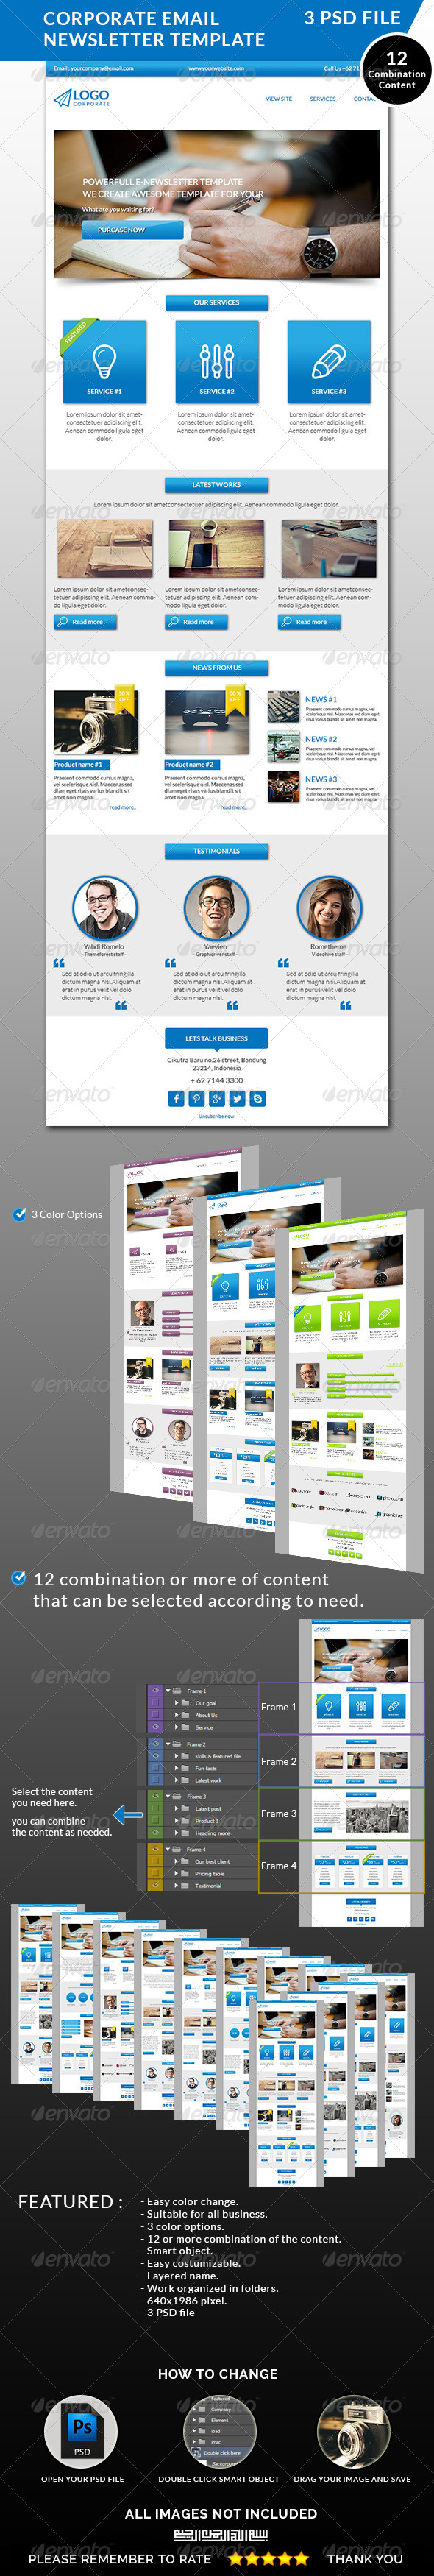 Corporate Email Newsletter Template On Behance